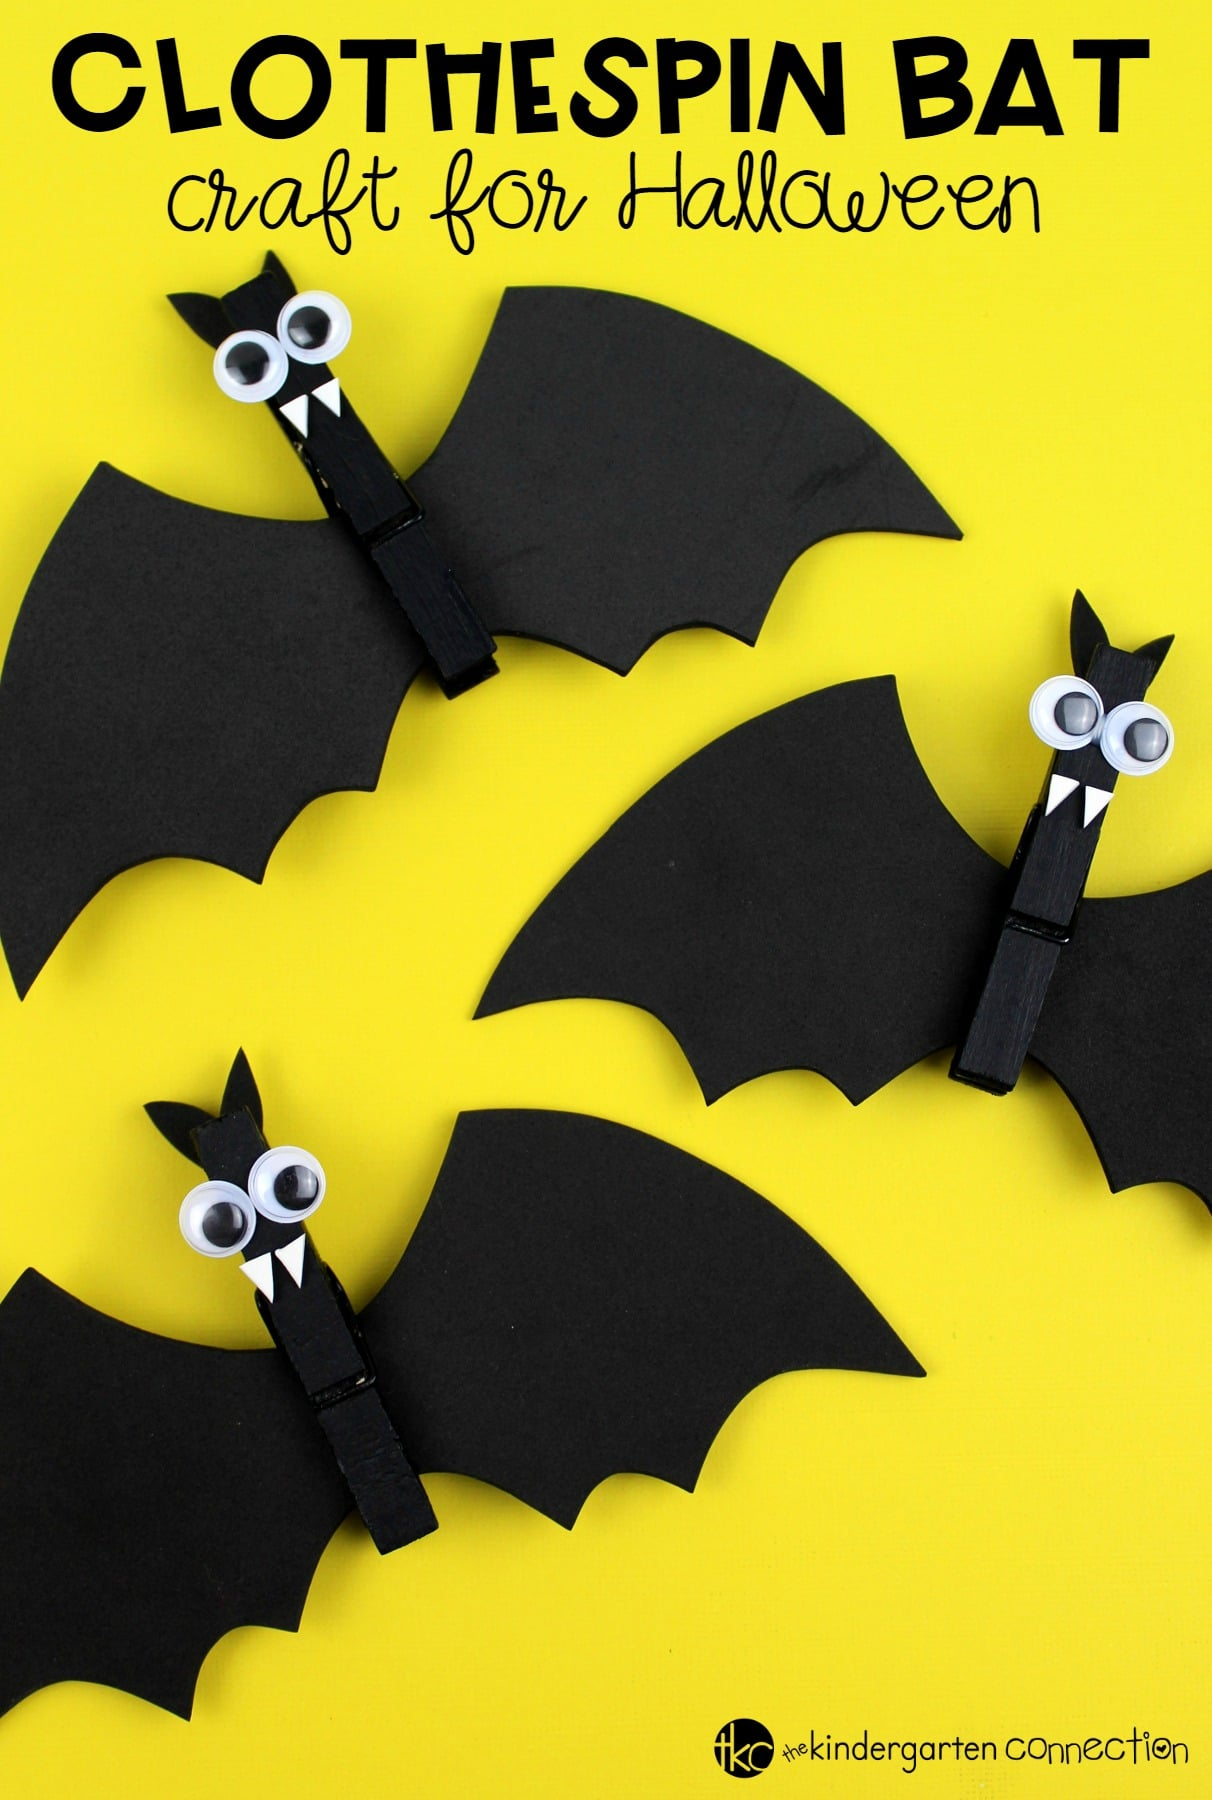 Cute Clothespin Bat Craft For Halloween